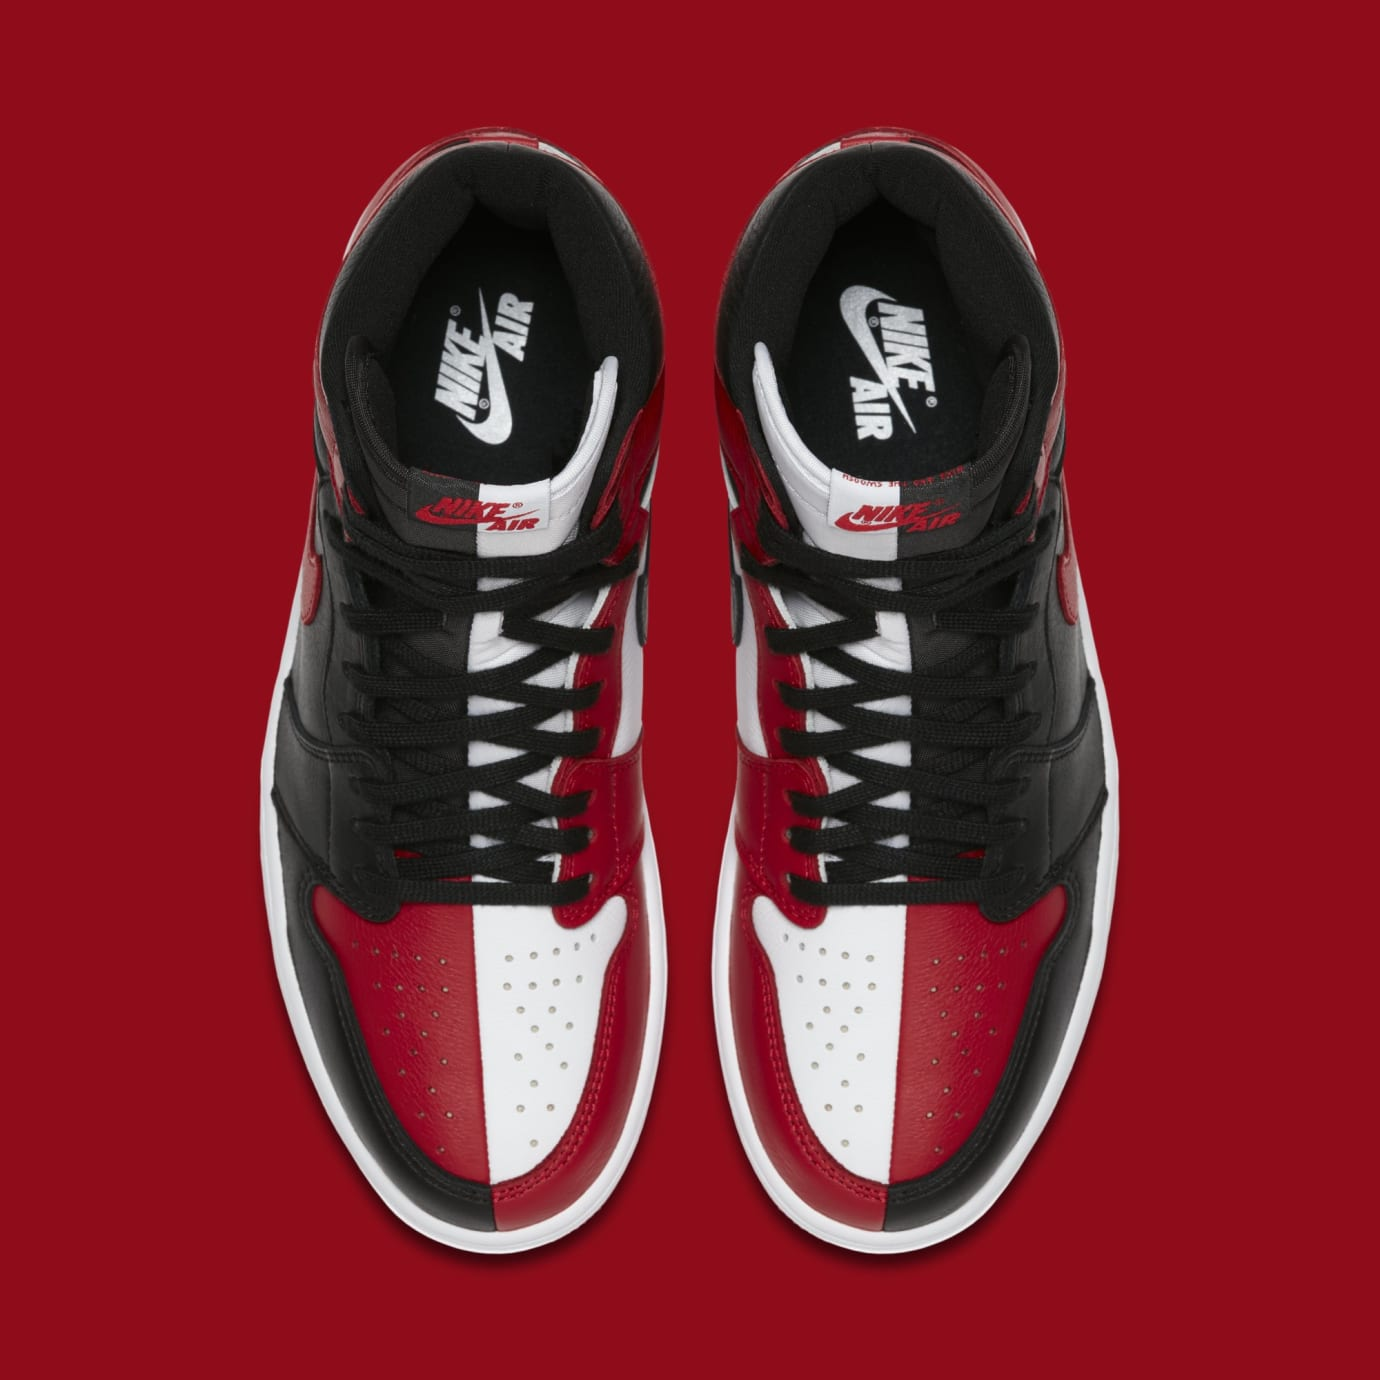 8eb7b327189 Air Jordan 1 I High OG Homage to Home Release Date AR9880-023 | Sole ...